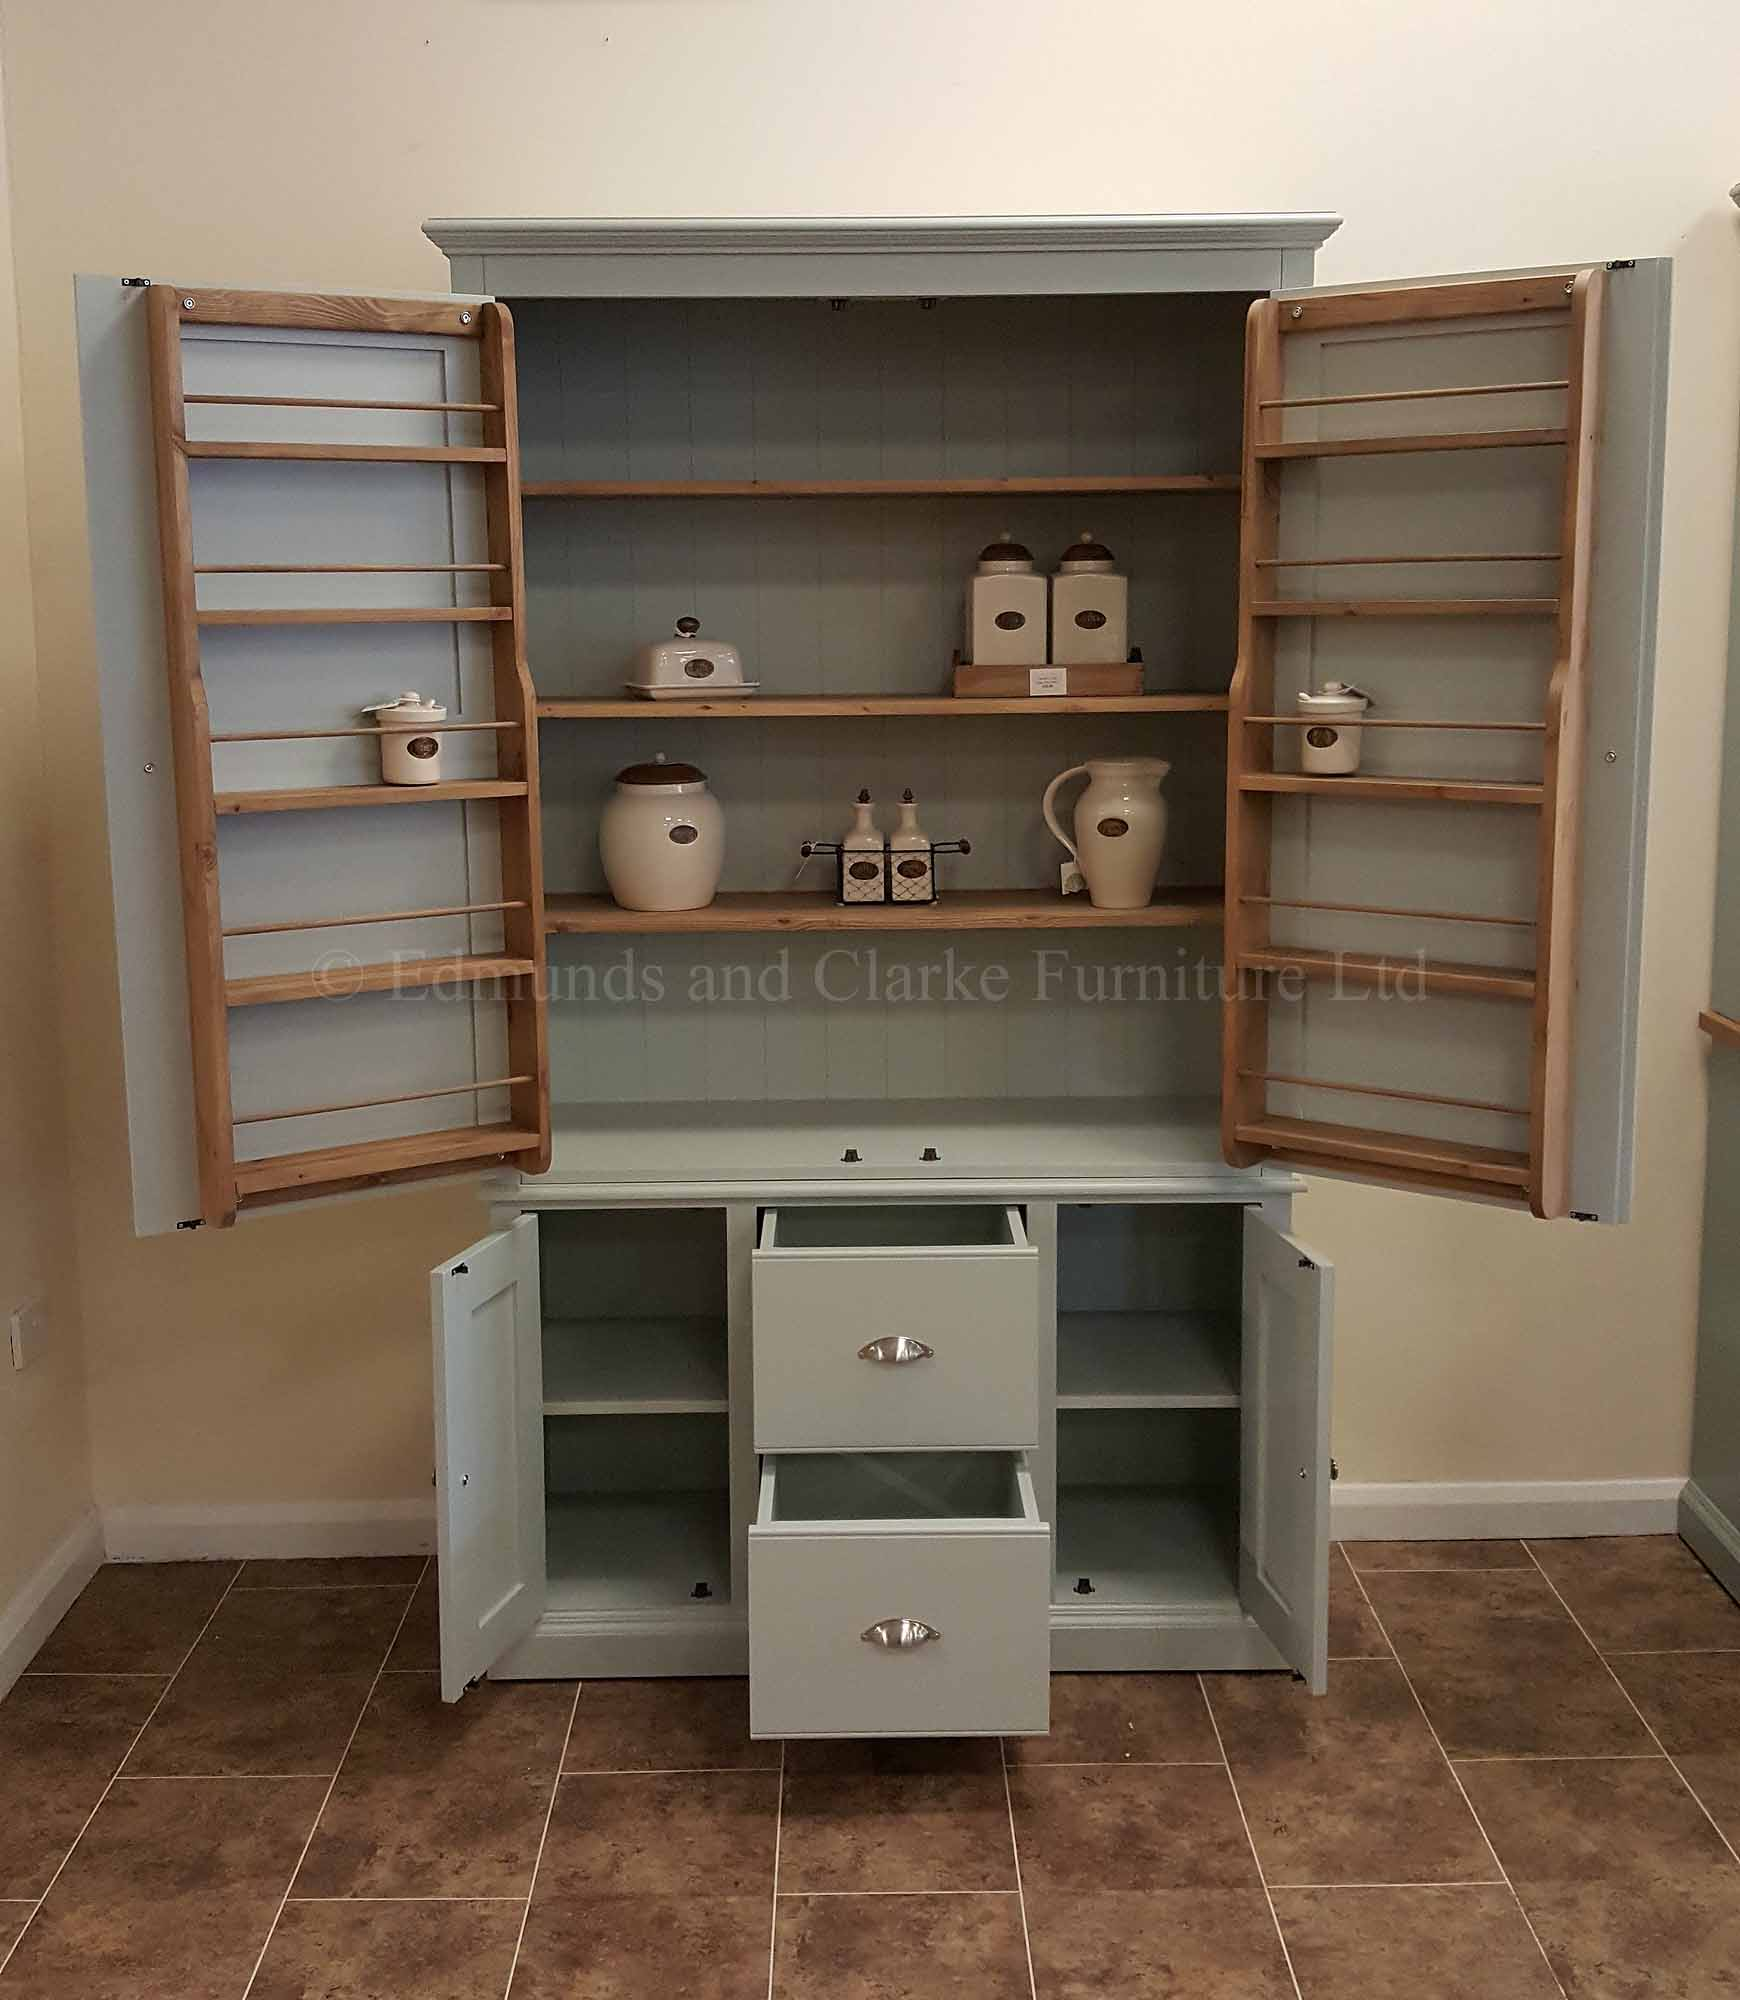 Kitchen larder cupboard painted with internal shelving and spice racks